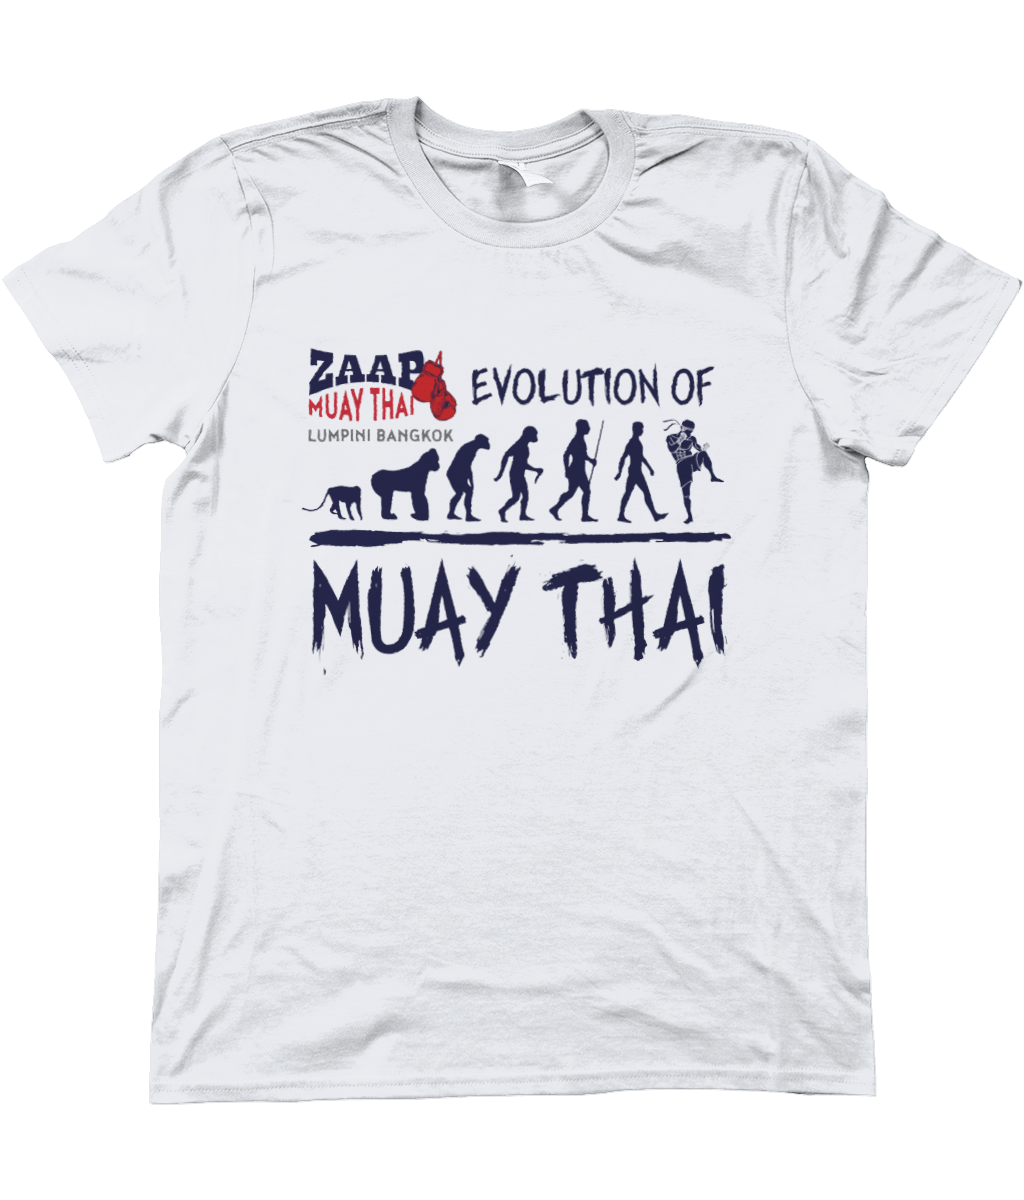 EVOLUTION OF MUAY THAI